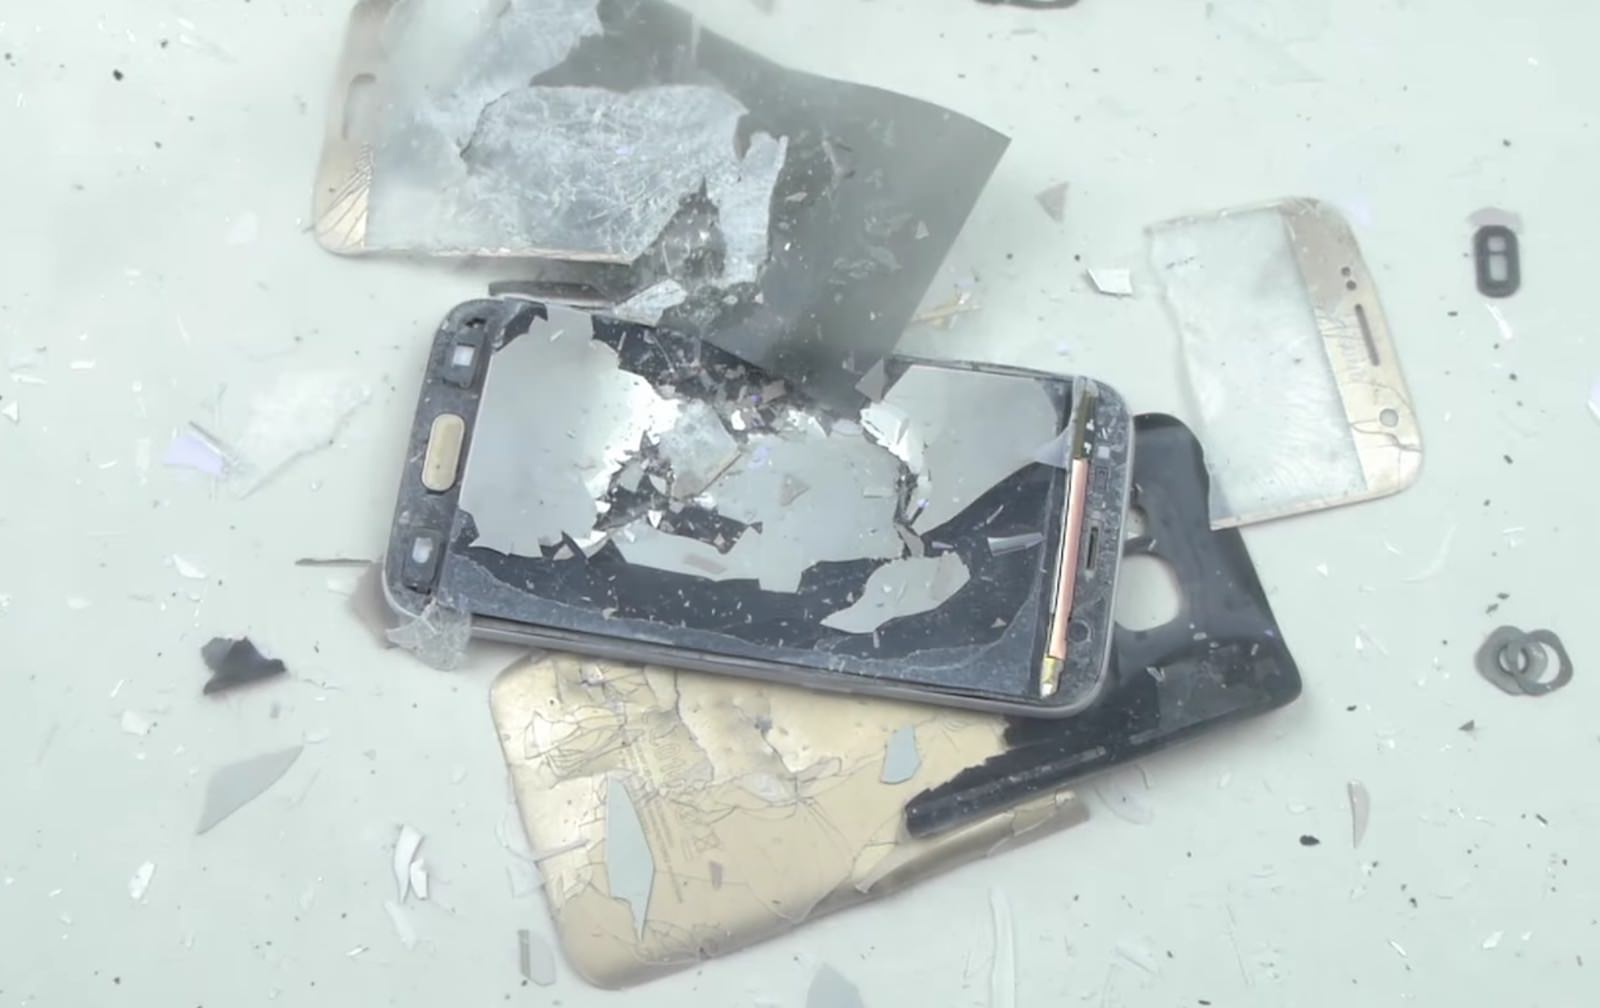 Samsung Galaxy S7 crash test 2